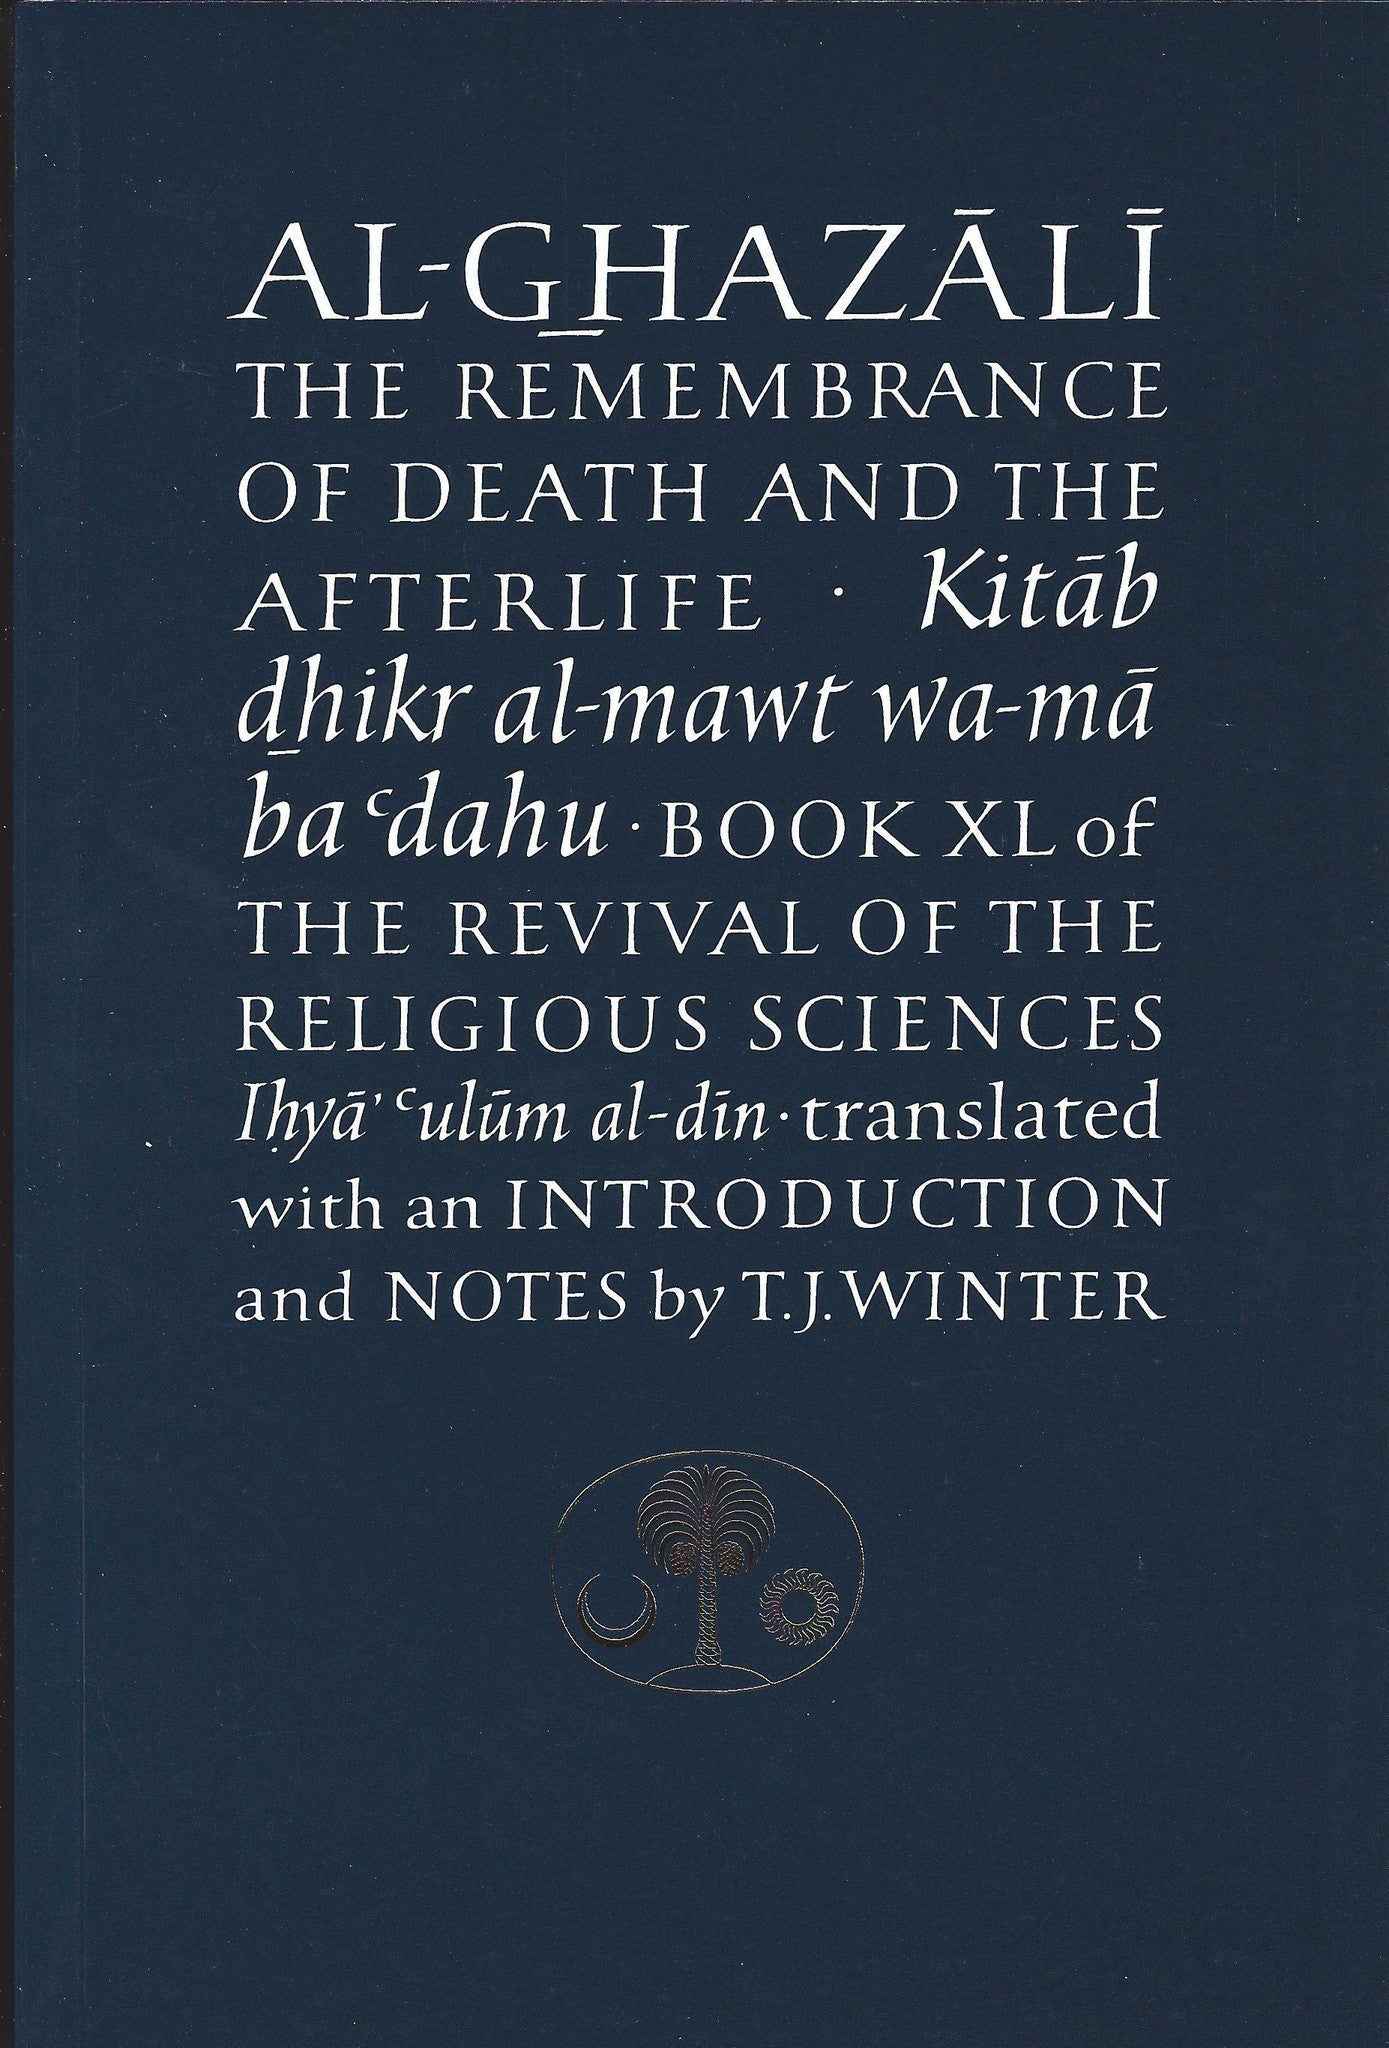 The Remembrance of Death and the Afterlife: Book XL of the Revival of the Religious Sciences (Ghazali Series) , Book - Daybreak International Bookstore, Daybreak Press Global Bookshop